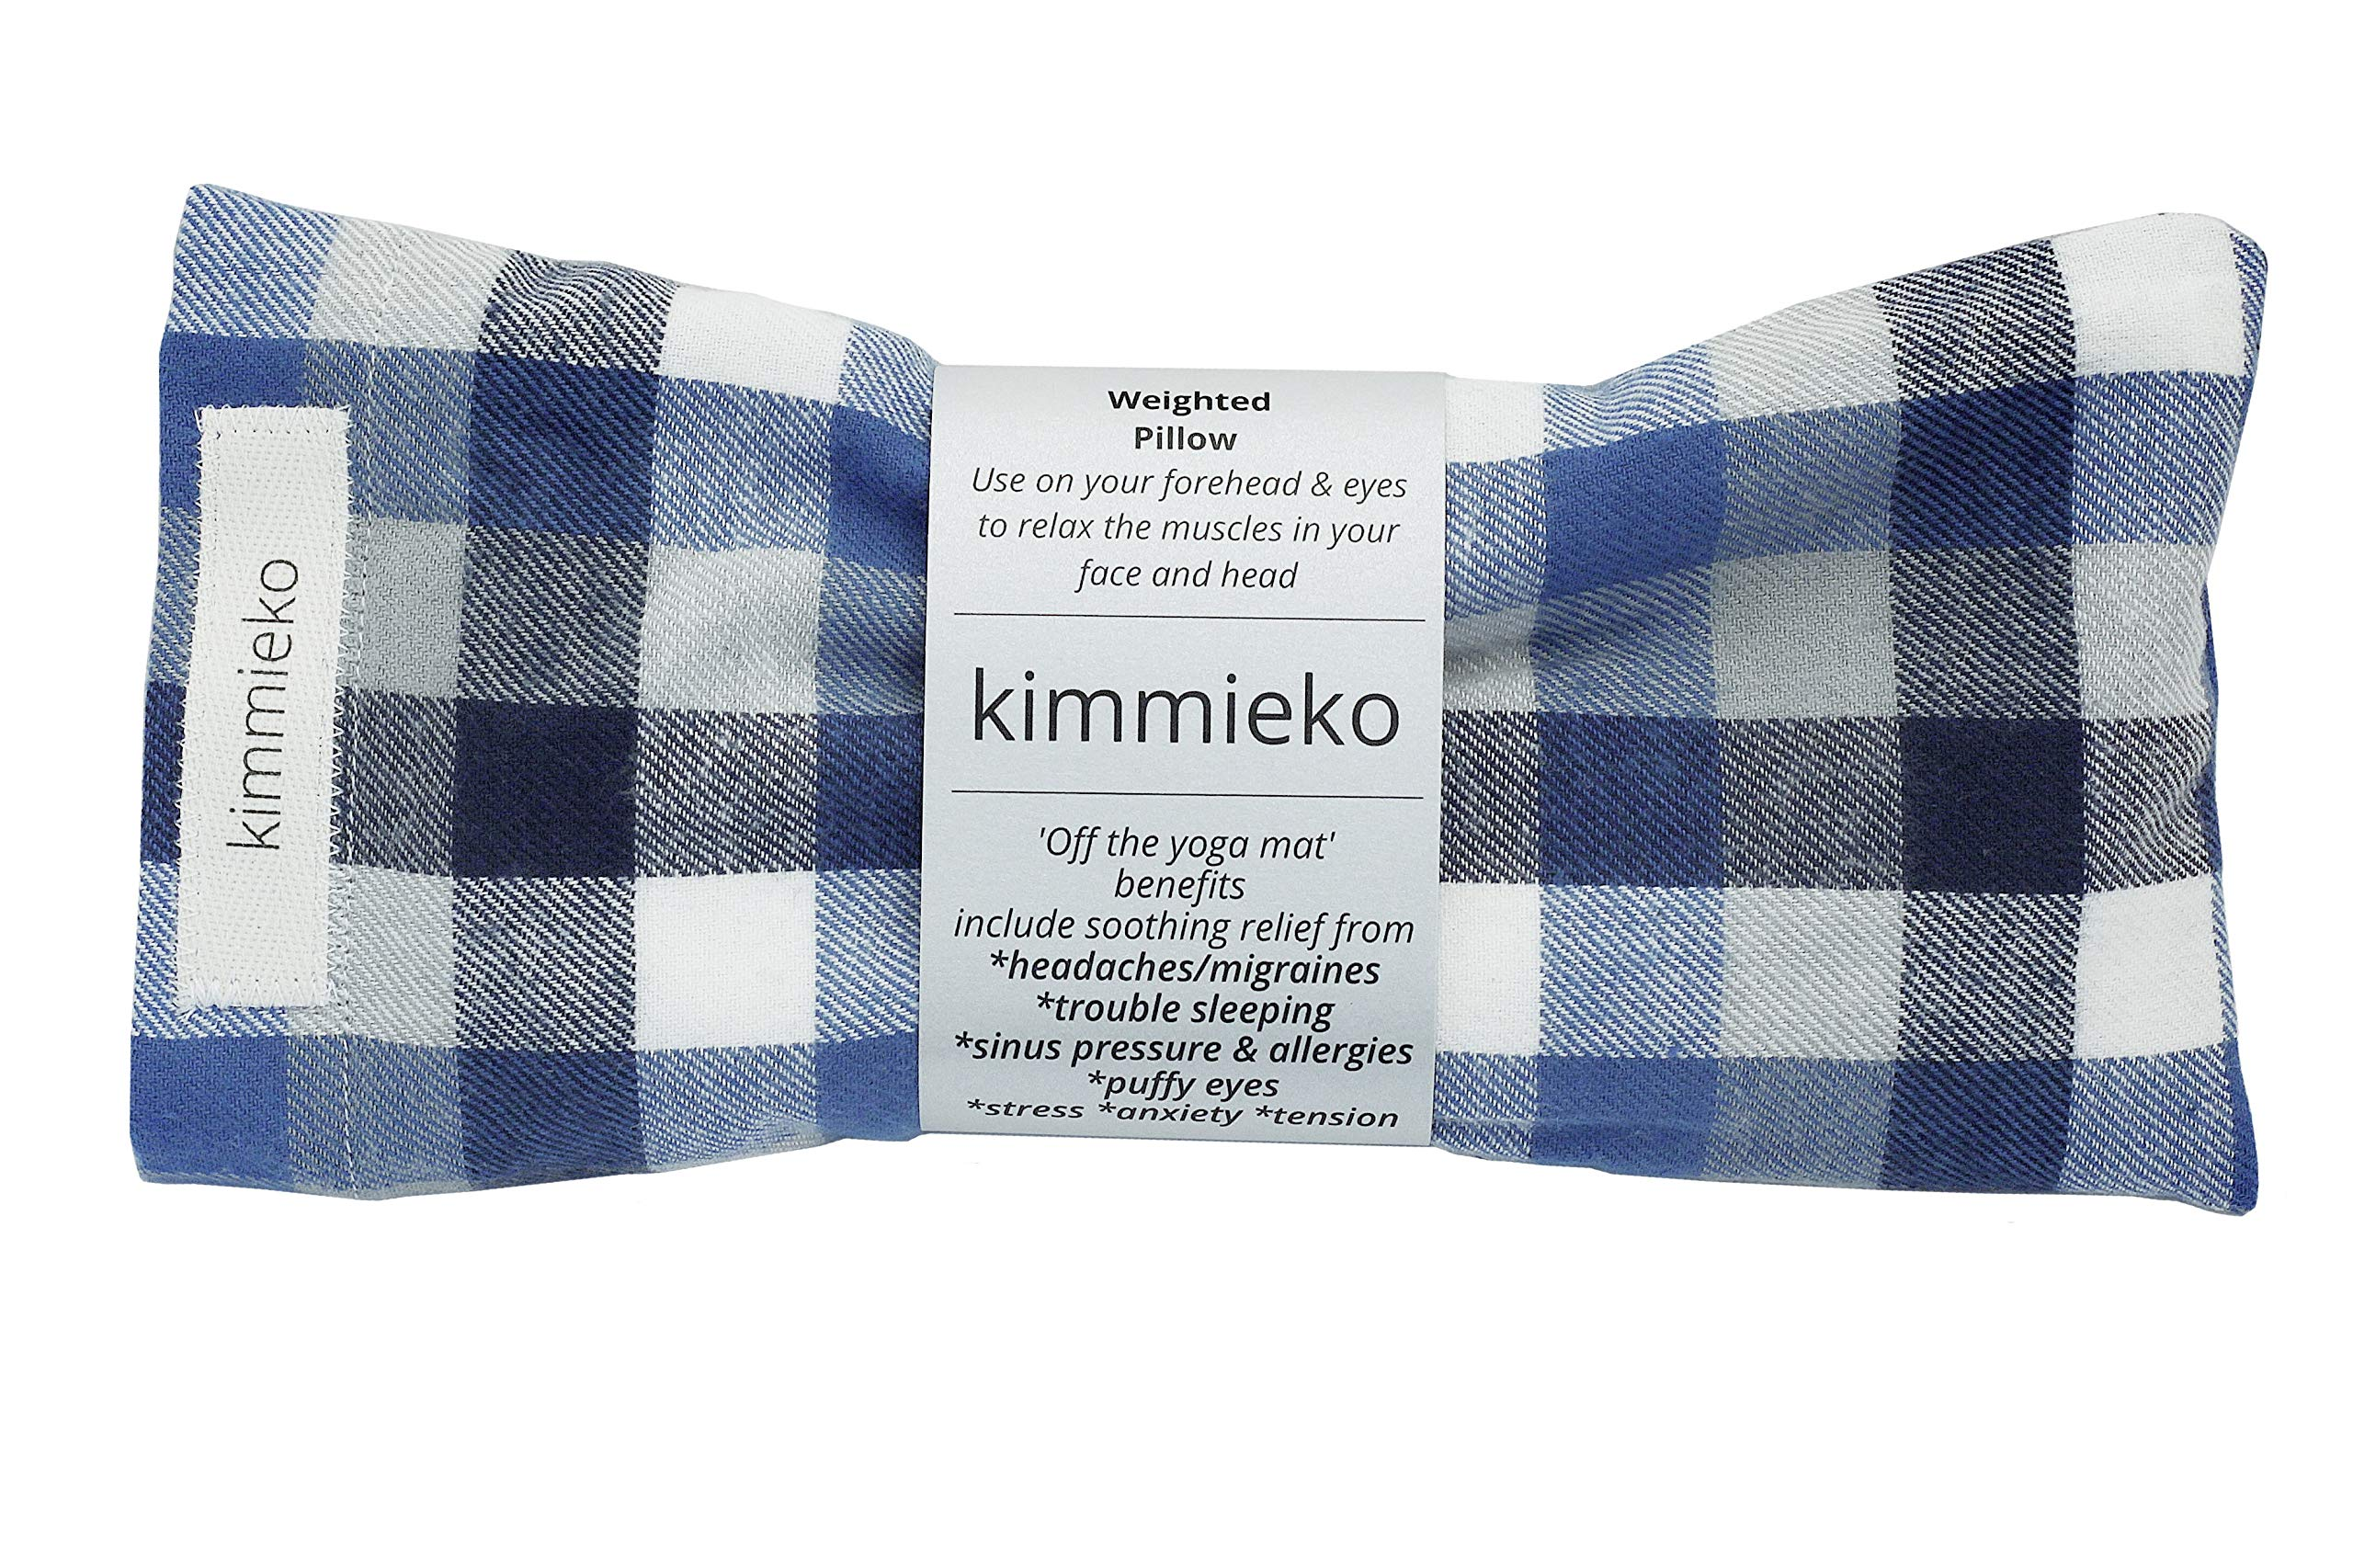 Kimmieko Weighted Spa Pillow for Eyes and Forehead | Organic Lavender and Flax Seed insert | Post Yoga Relaxation | Handmade in the USA (Blue Striped Flannel) by Kimmieko